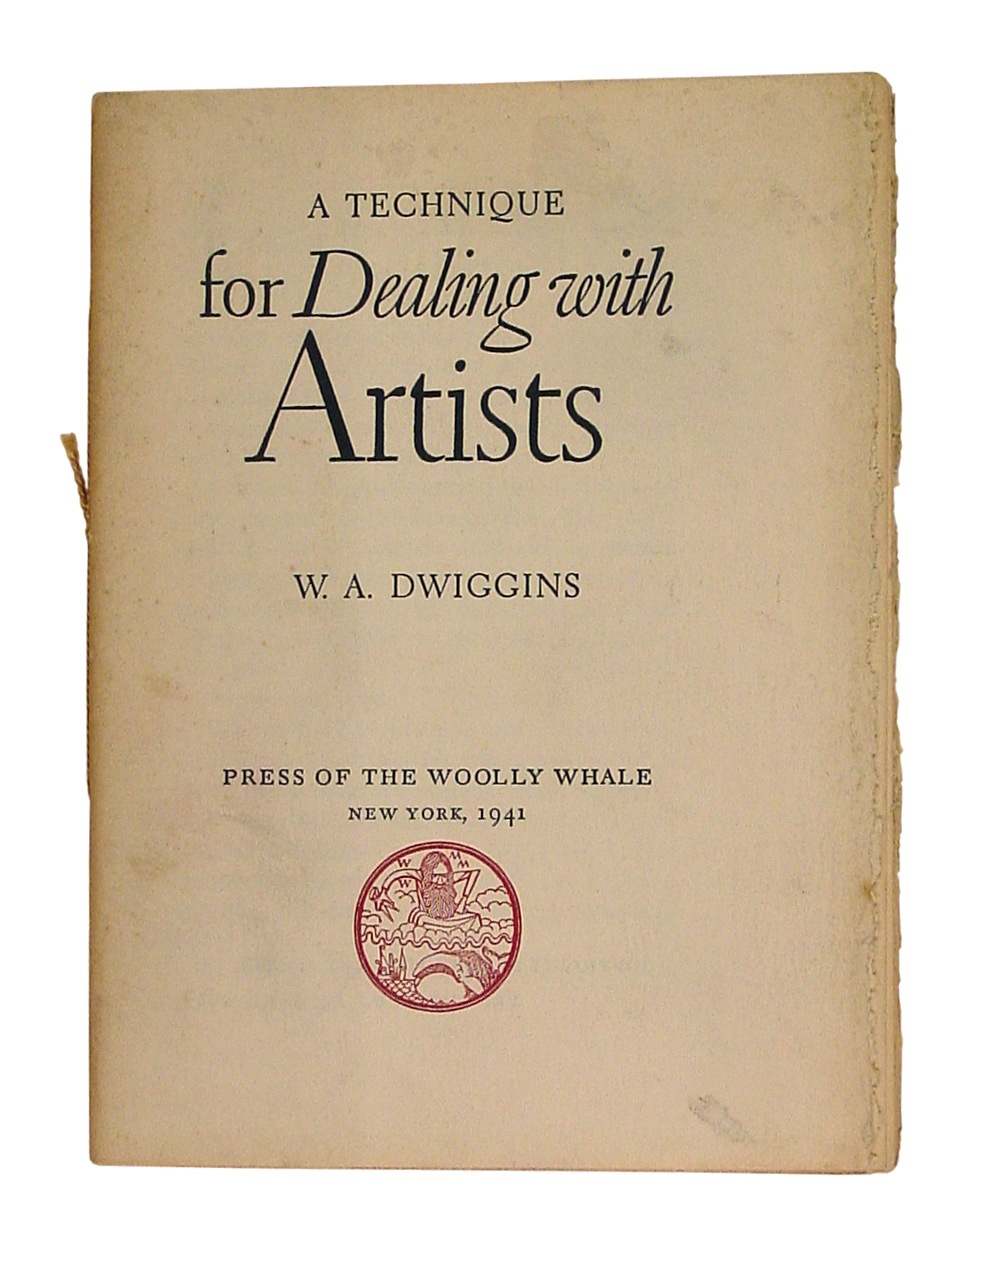 A Technique for Dealing with Artists by W.A. Dwiggins (New York: The Press of the Woolly Whale, 1941)